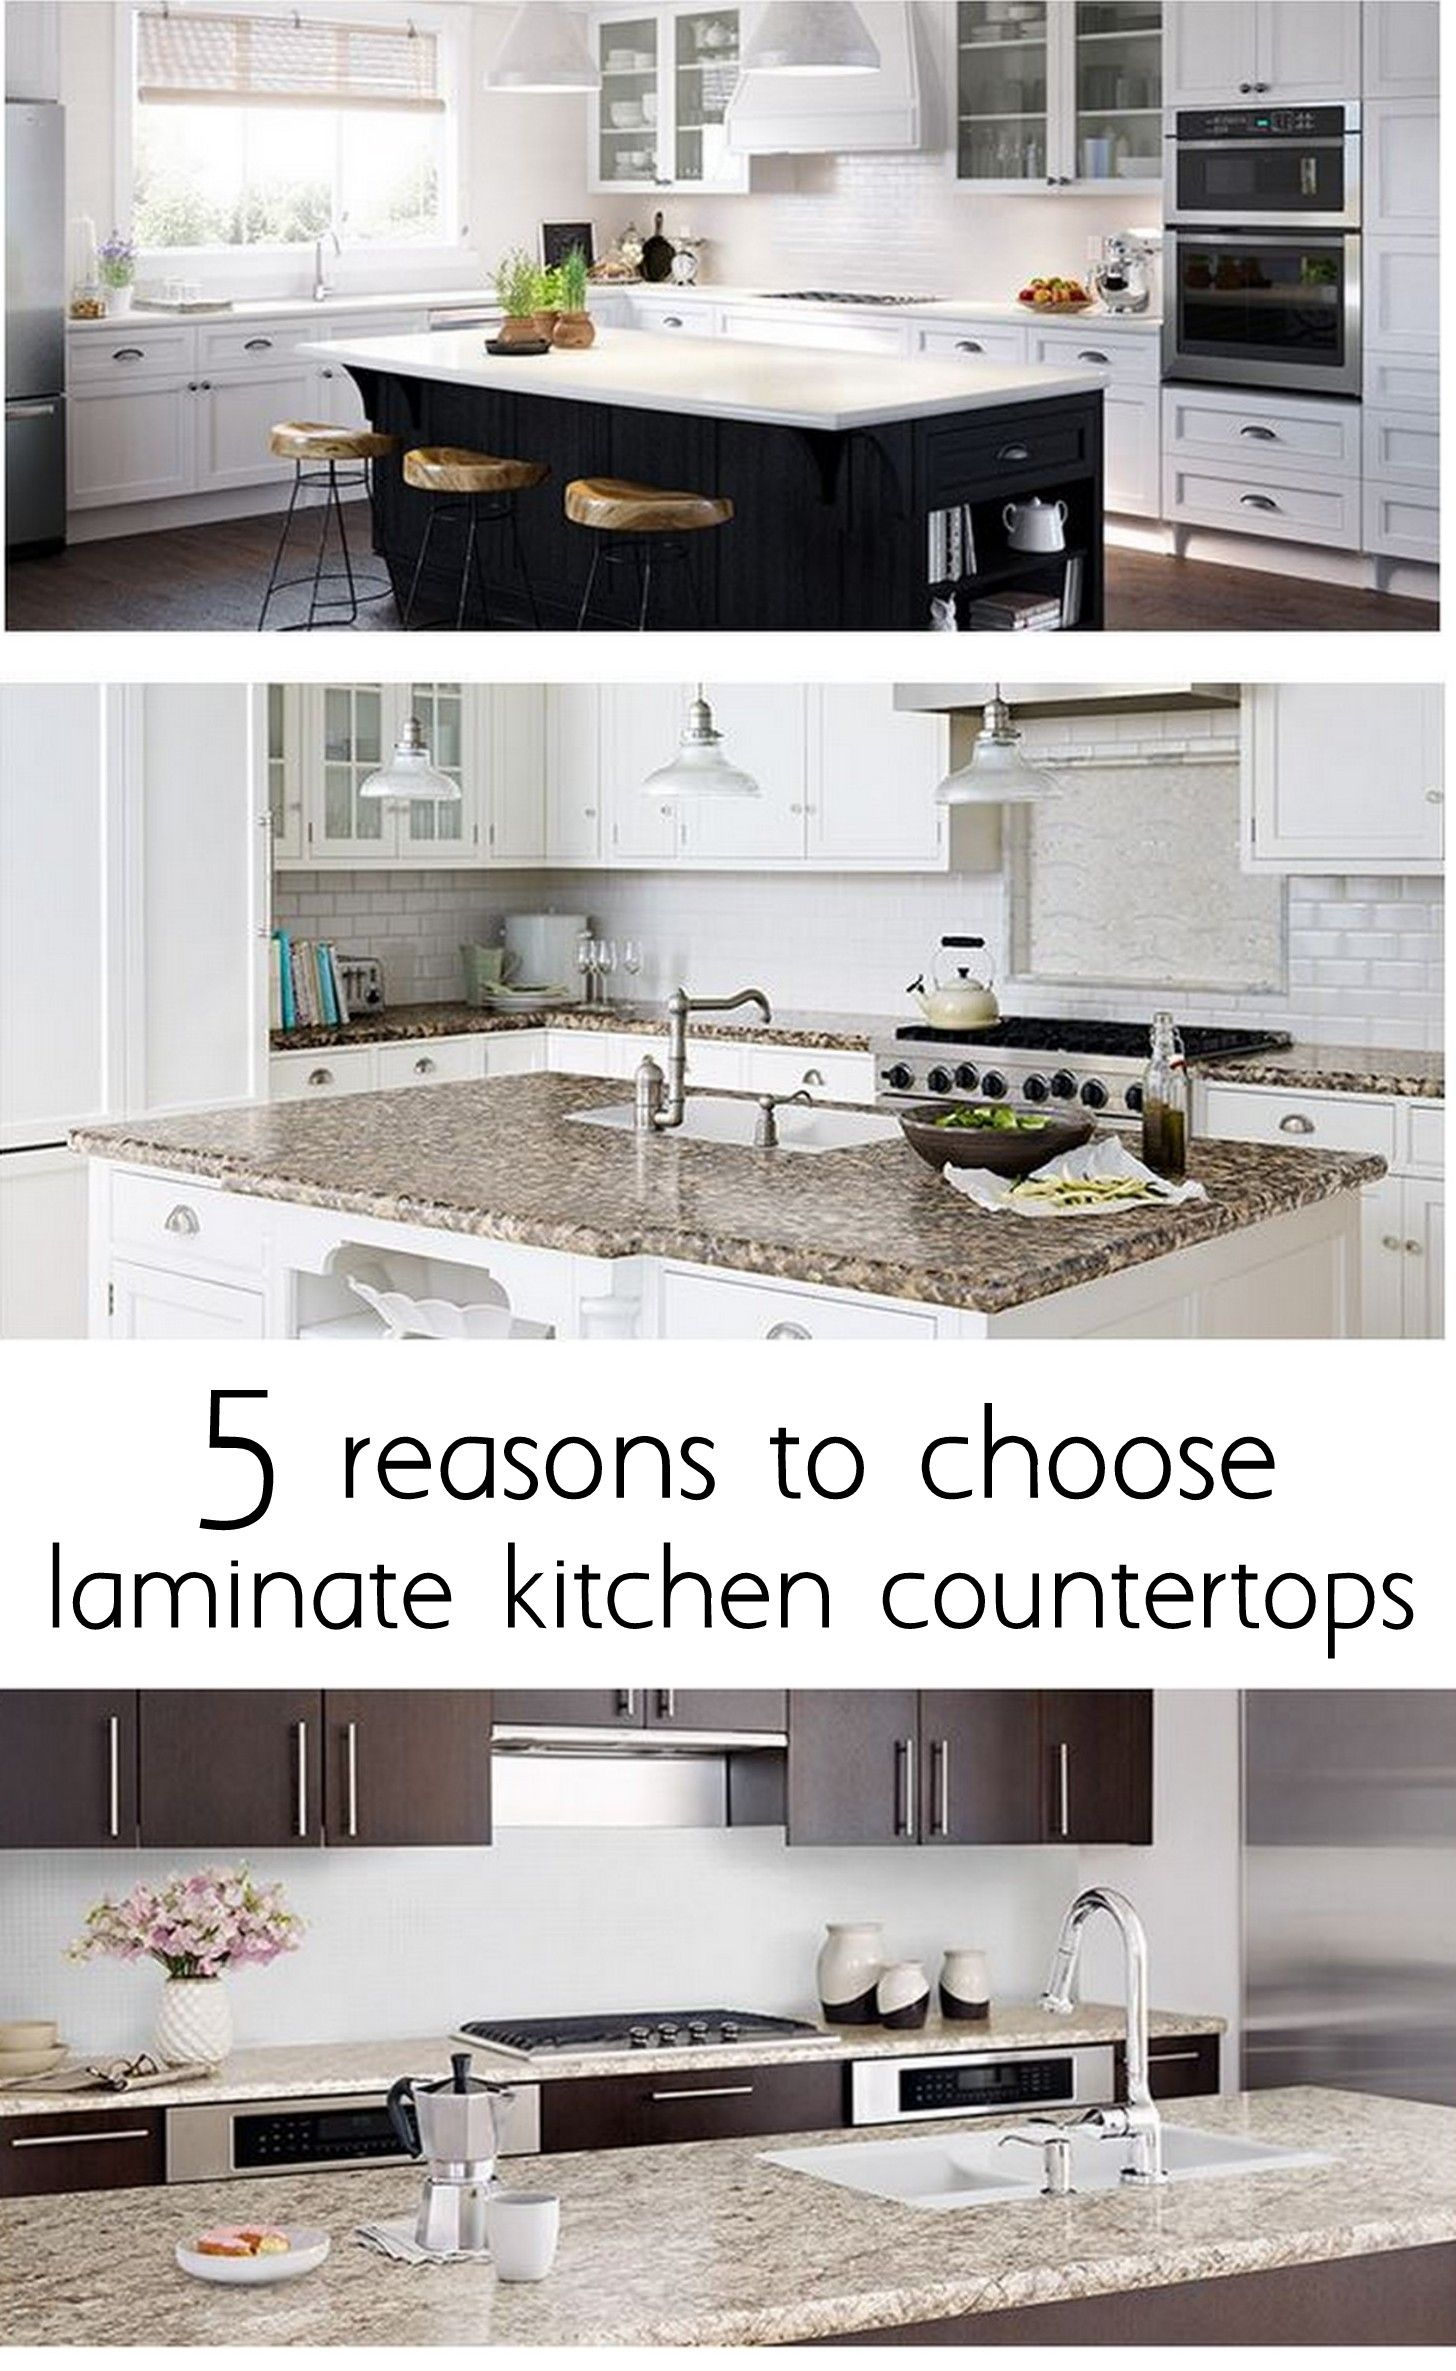 reasons to choose laminate kitchen countertops | CS Blog Images ...